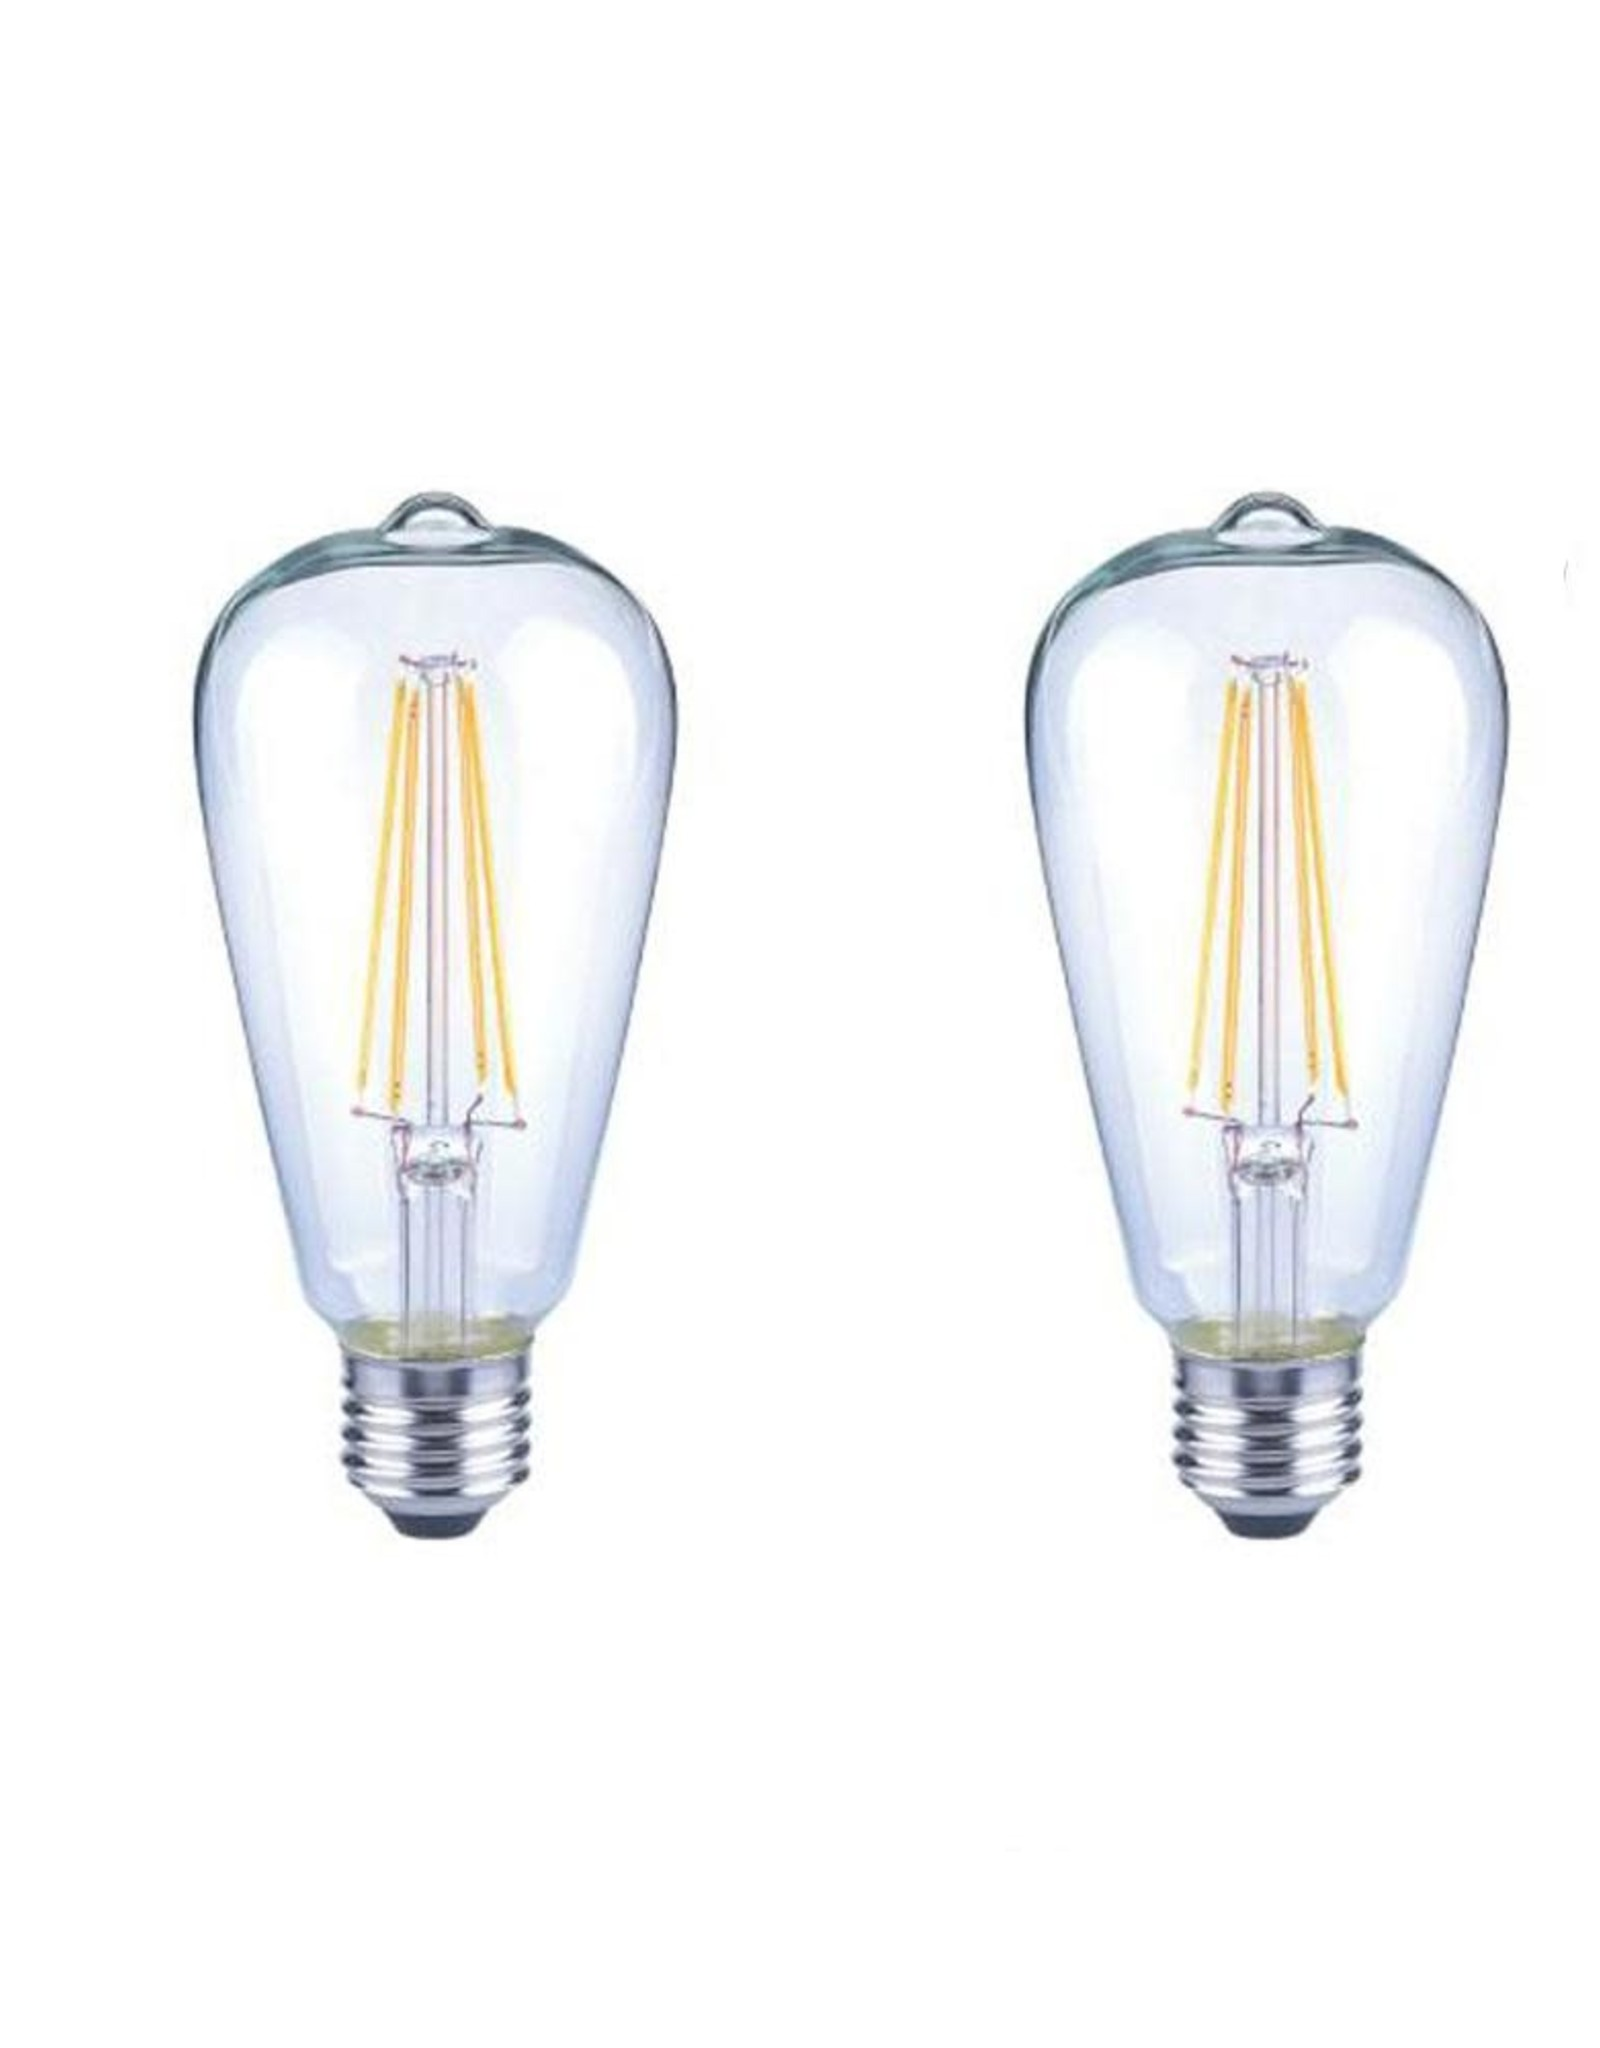 EcoSmart 40-Watt Equivalent ST19 Antique Edison Dimmable Clear Glass Filament Vintage Style LED Light Bulb Daylight 2 pack